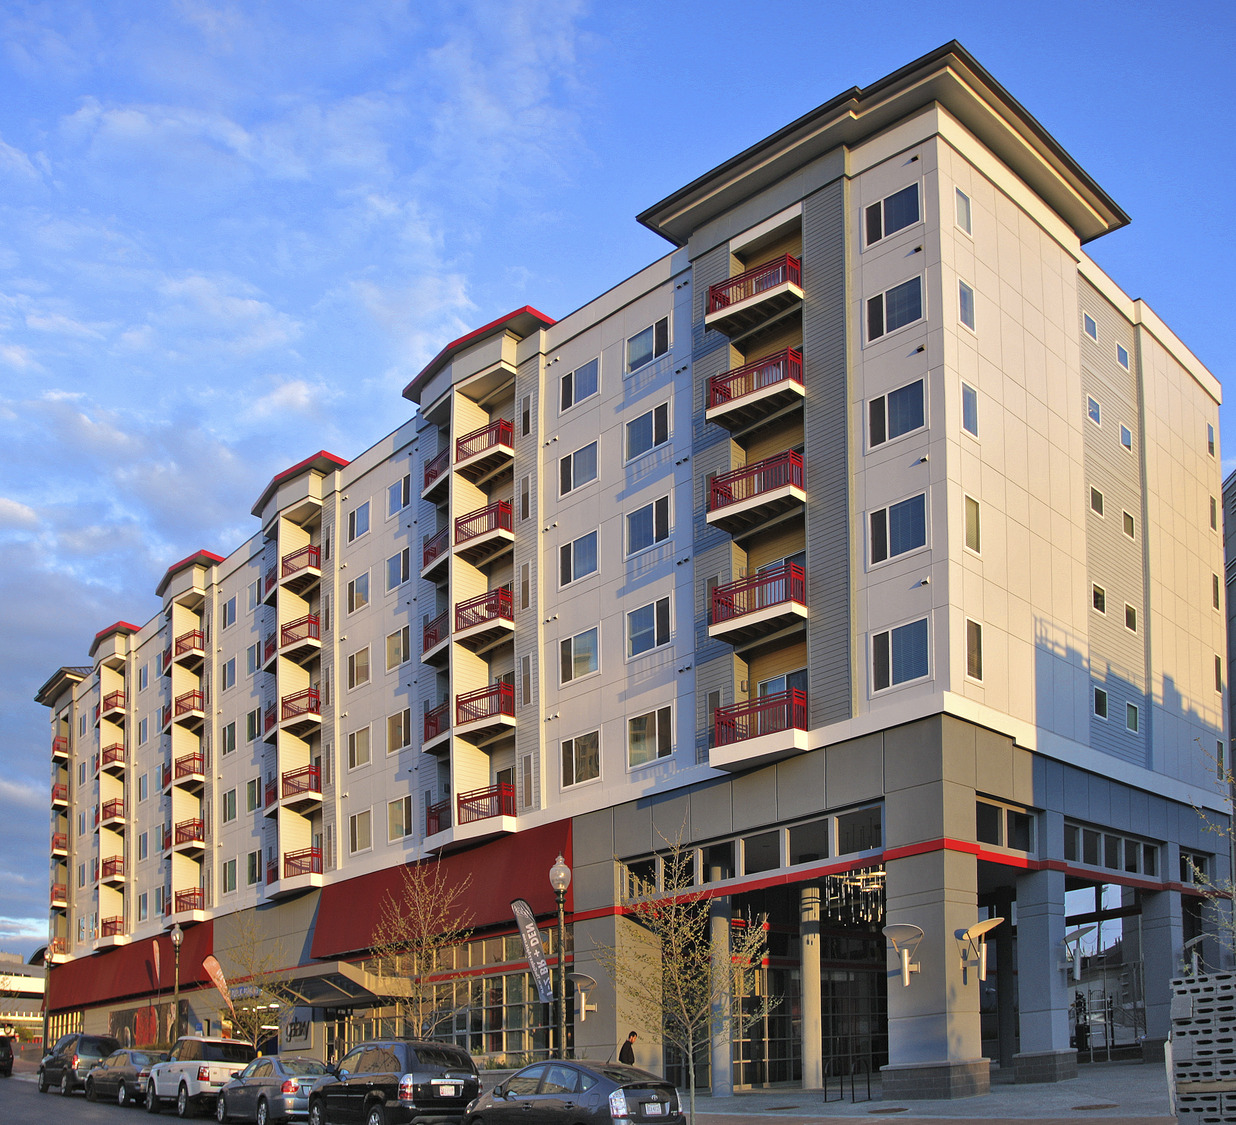 CBG builds The Galaxy, a 195-Unit Apartment Building with Four-Level Underground Cast-in-Place Parking in Silver Spring, MD - Image #6